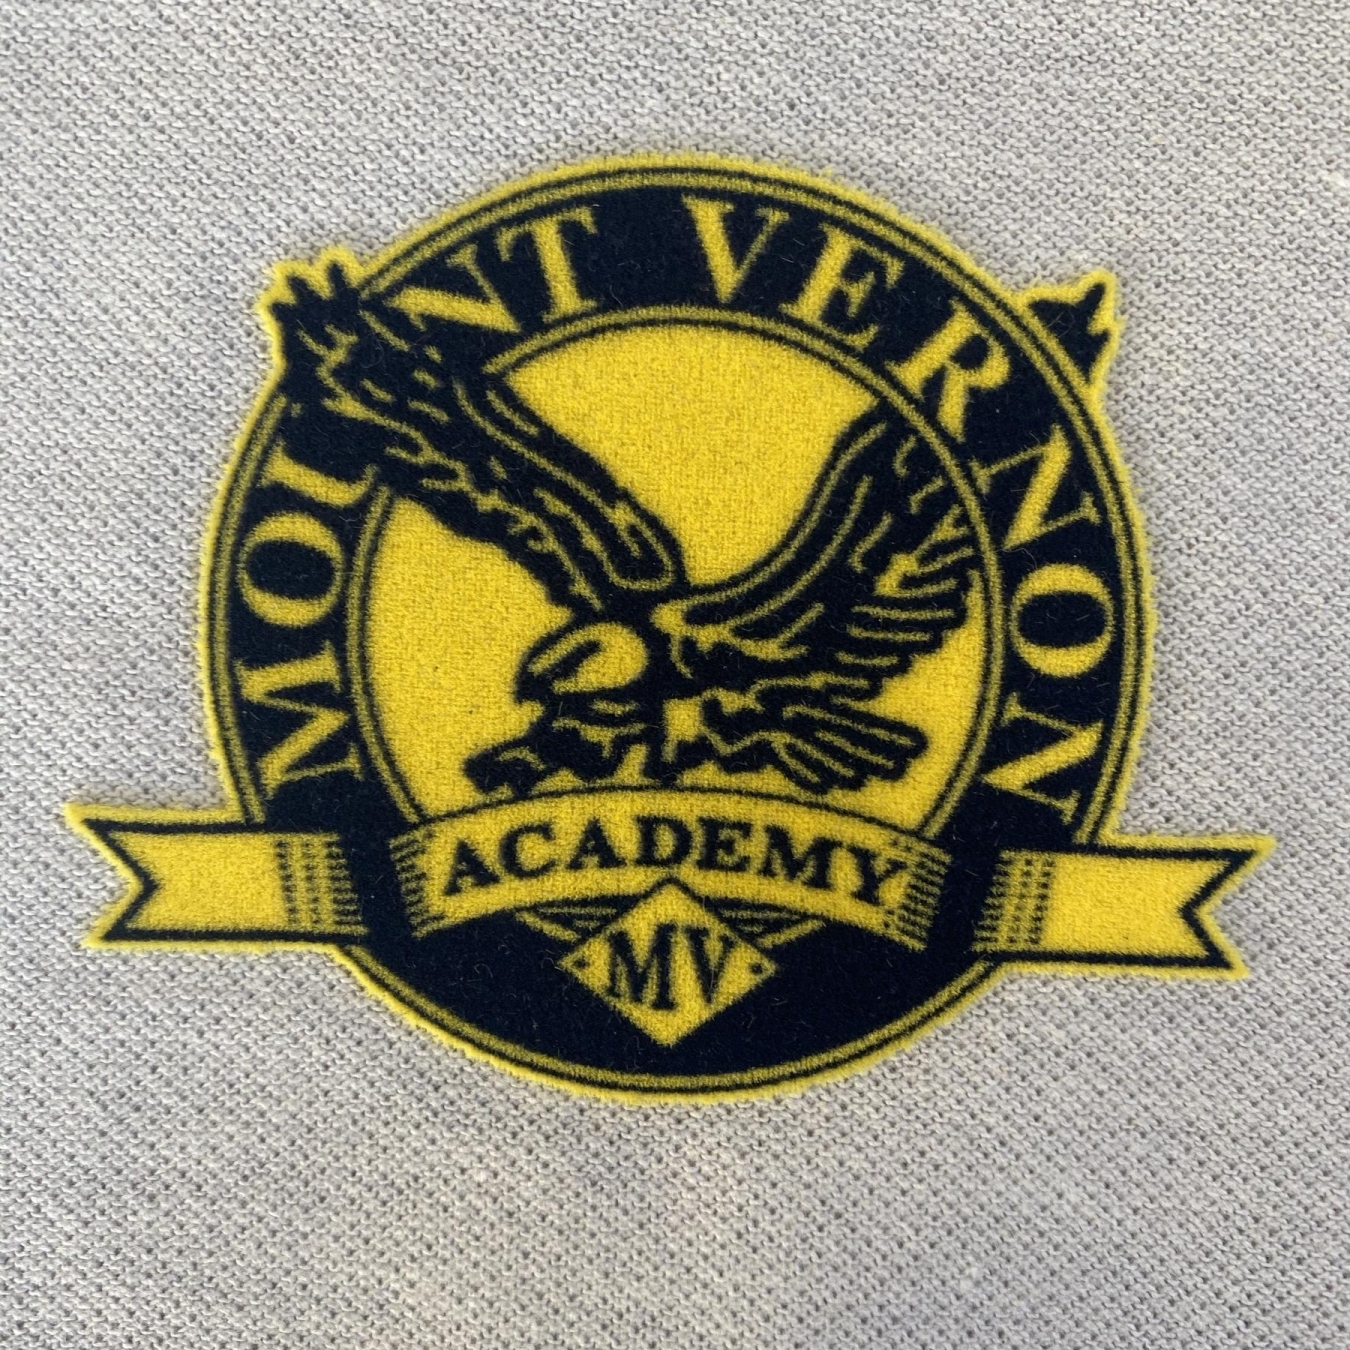 Mount Vernon Academy Patch